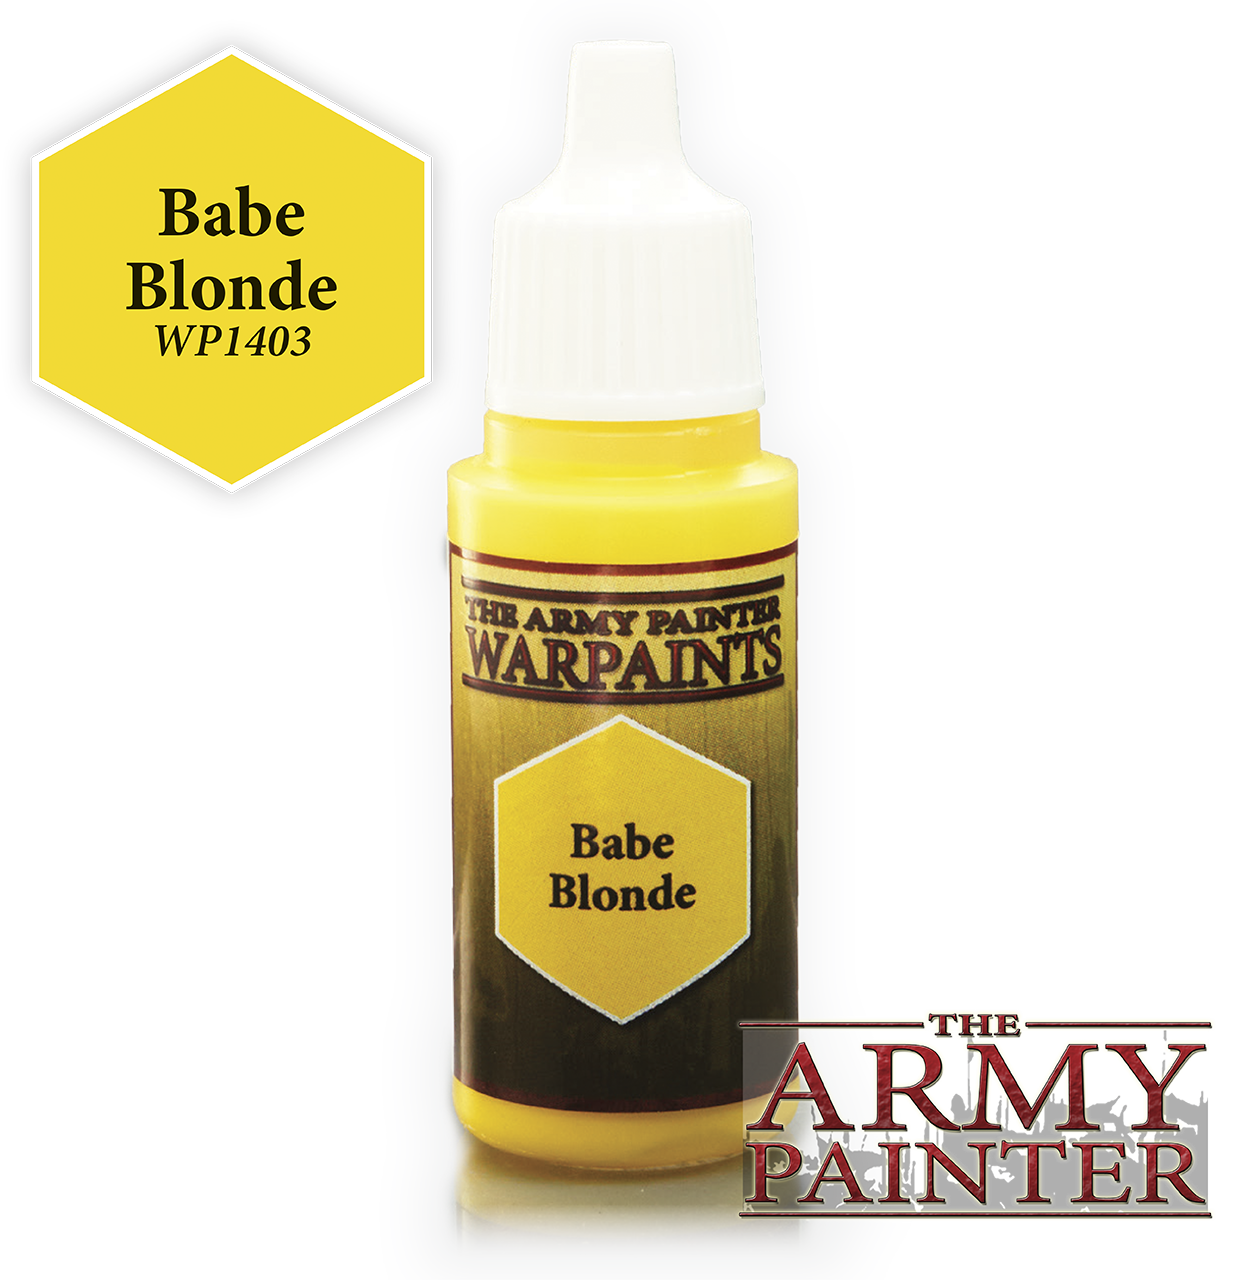 Babe Blonde - Army Painter Warpaints WP1403